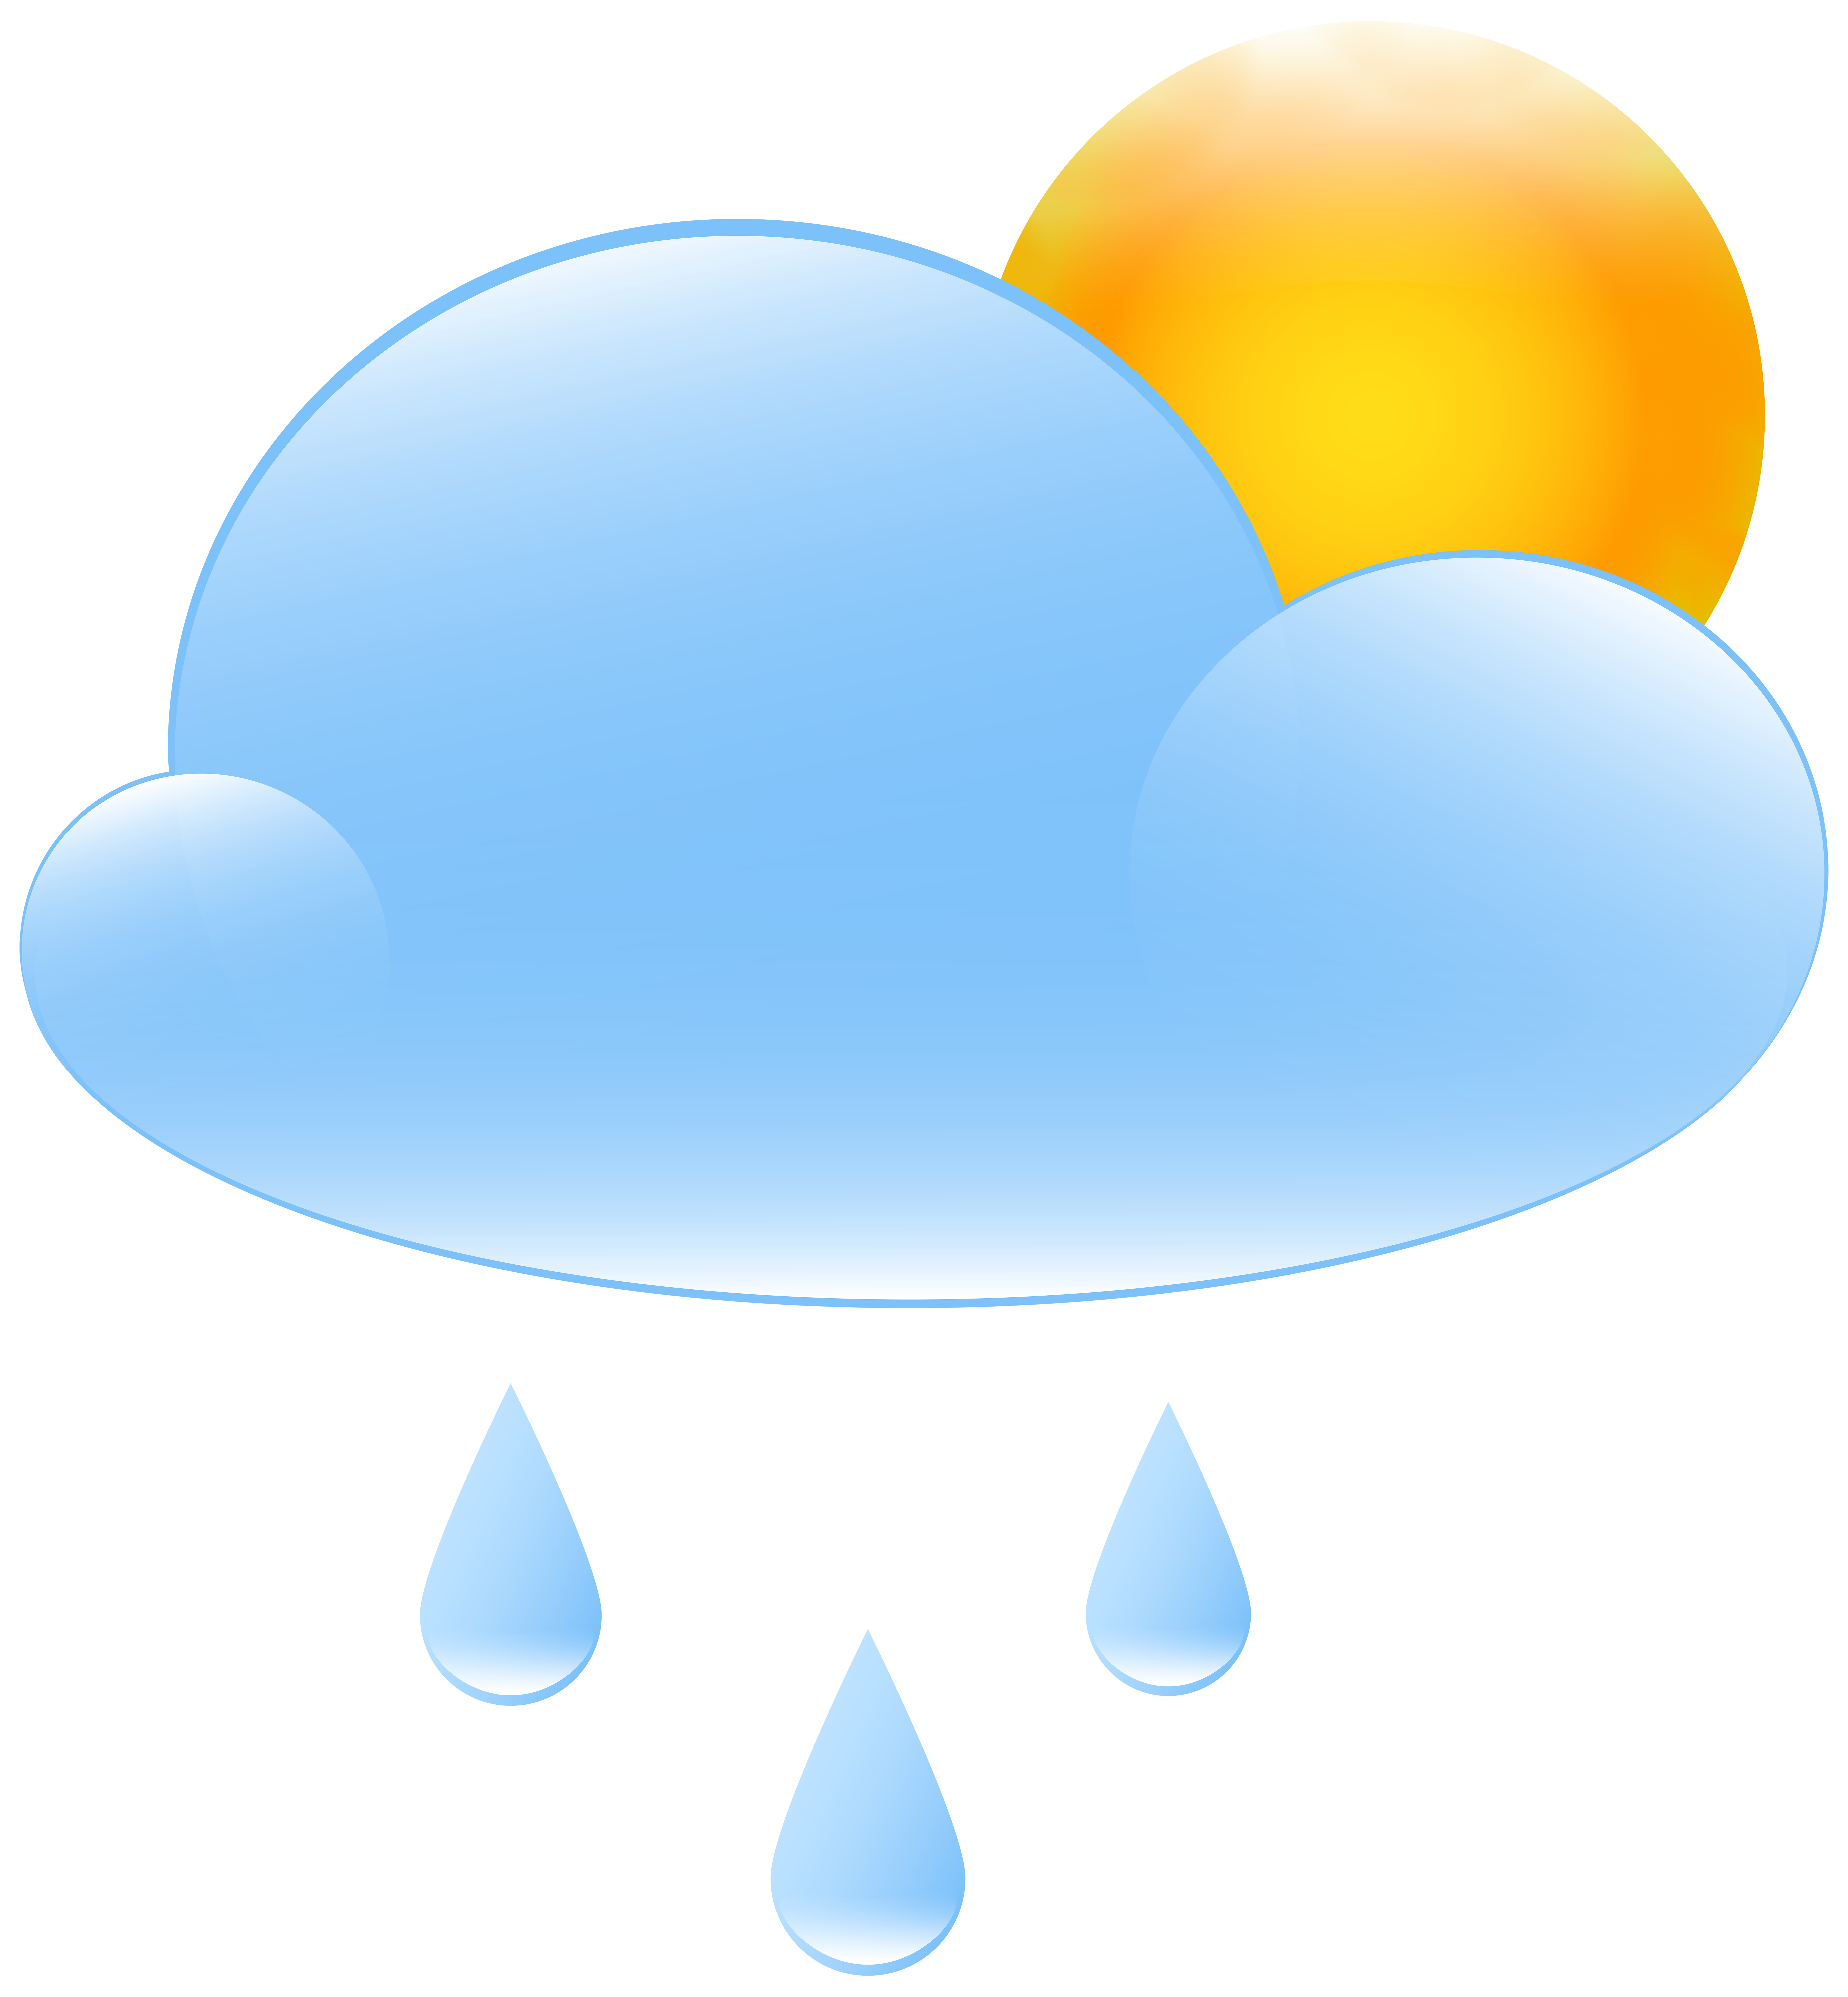 Rain sun clipart picture black and white library Partly Cloudy with Sun and Rain Weather Icon PNG Clip Art - Best WEB ... picture black and white library